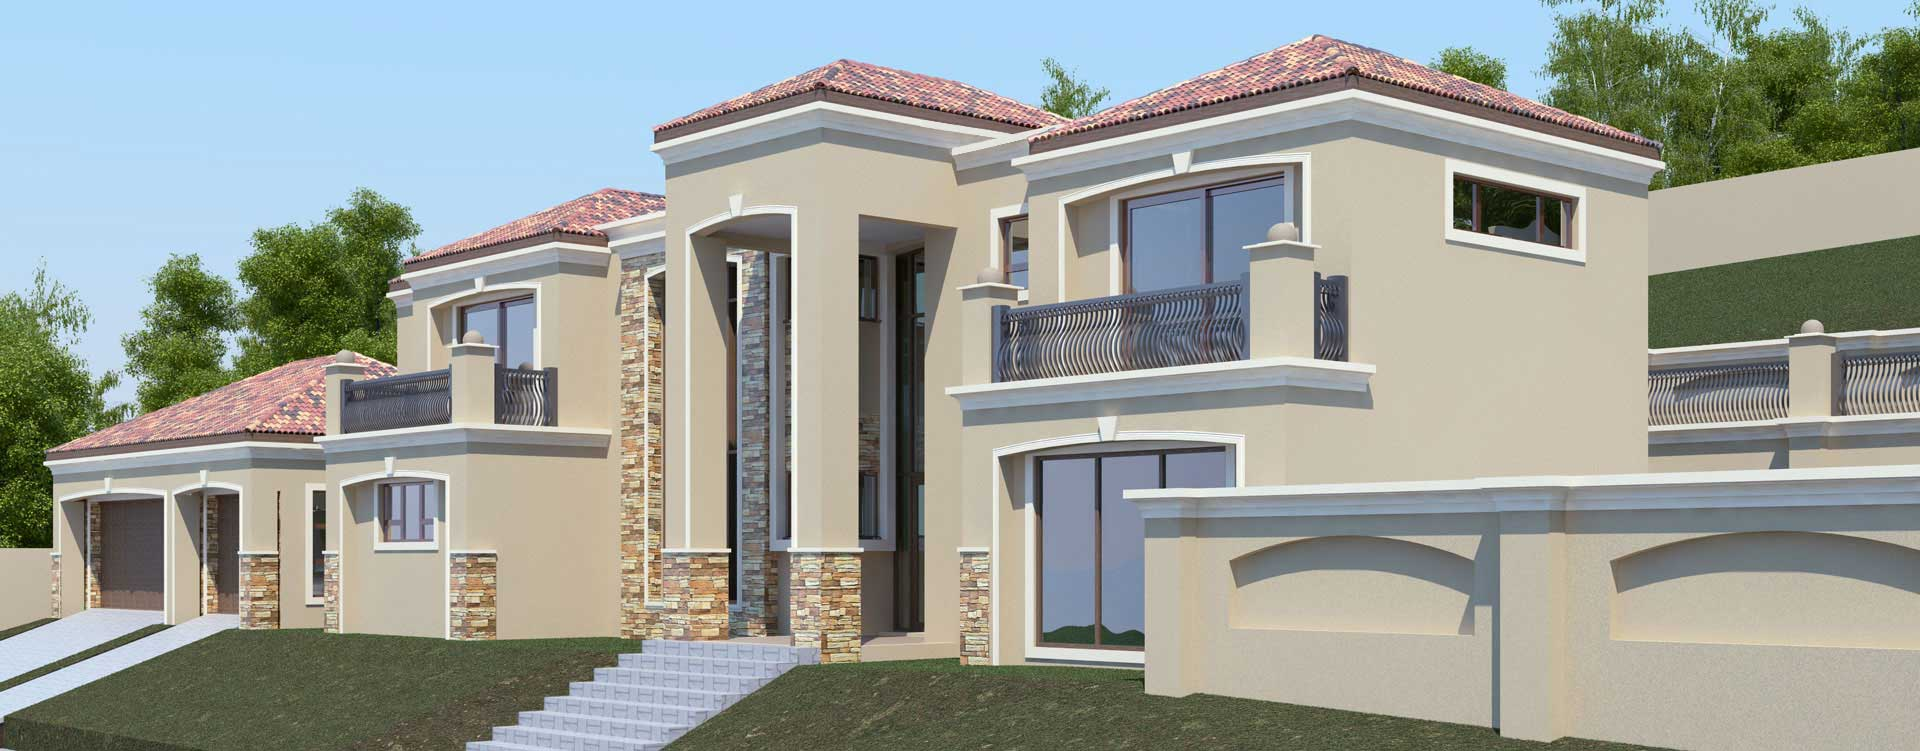 modern tuscan style 5 bedroom house plan double storey floor plans nethouseplans architectural - House Plan Designs